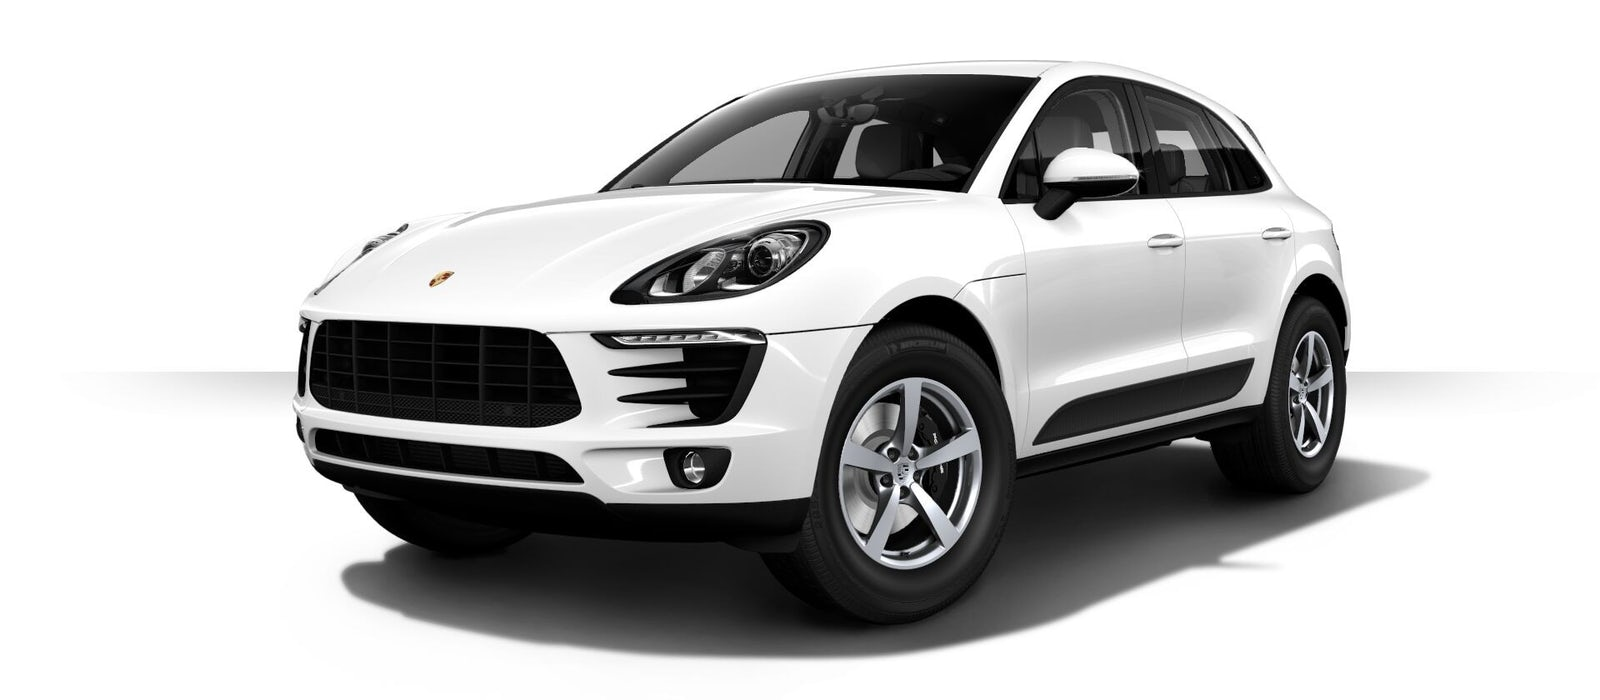 Porsche Macan Colour Guide And Prices 2015 Carwow